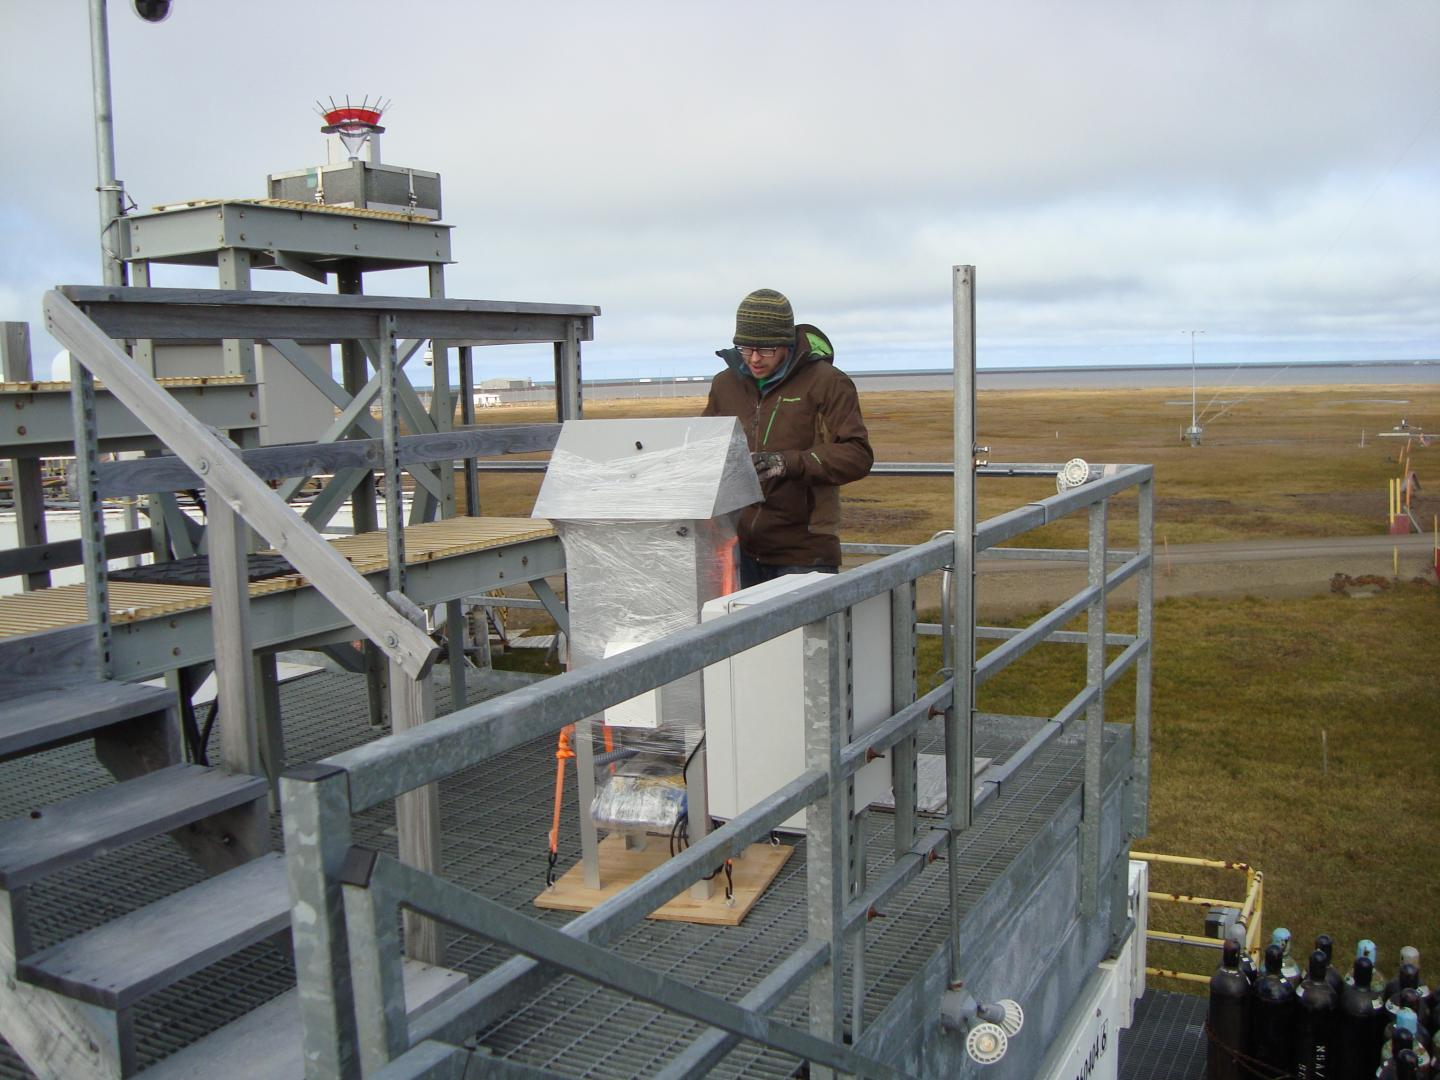 Researchers Find that Fossil Fuel Combustion Is Main Contributor to Black Carbon around Arctic